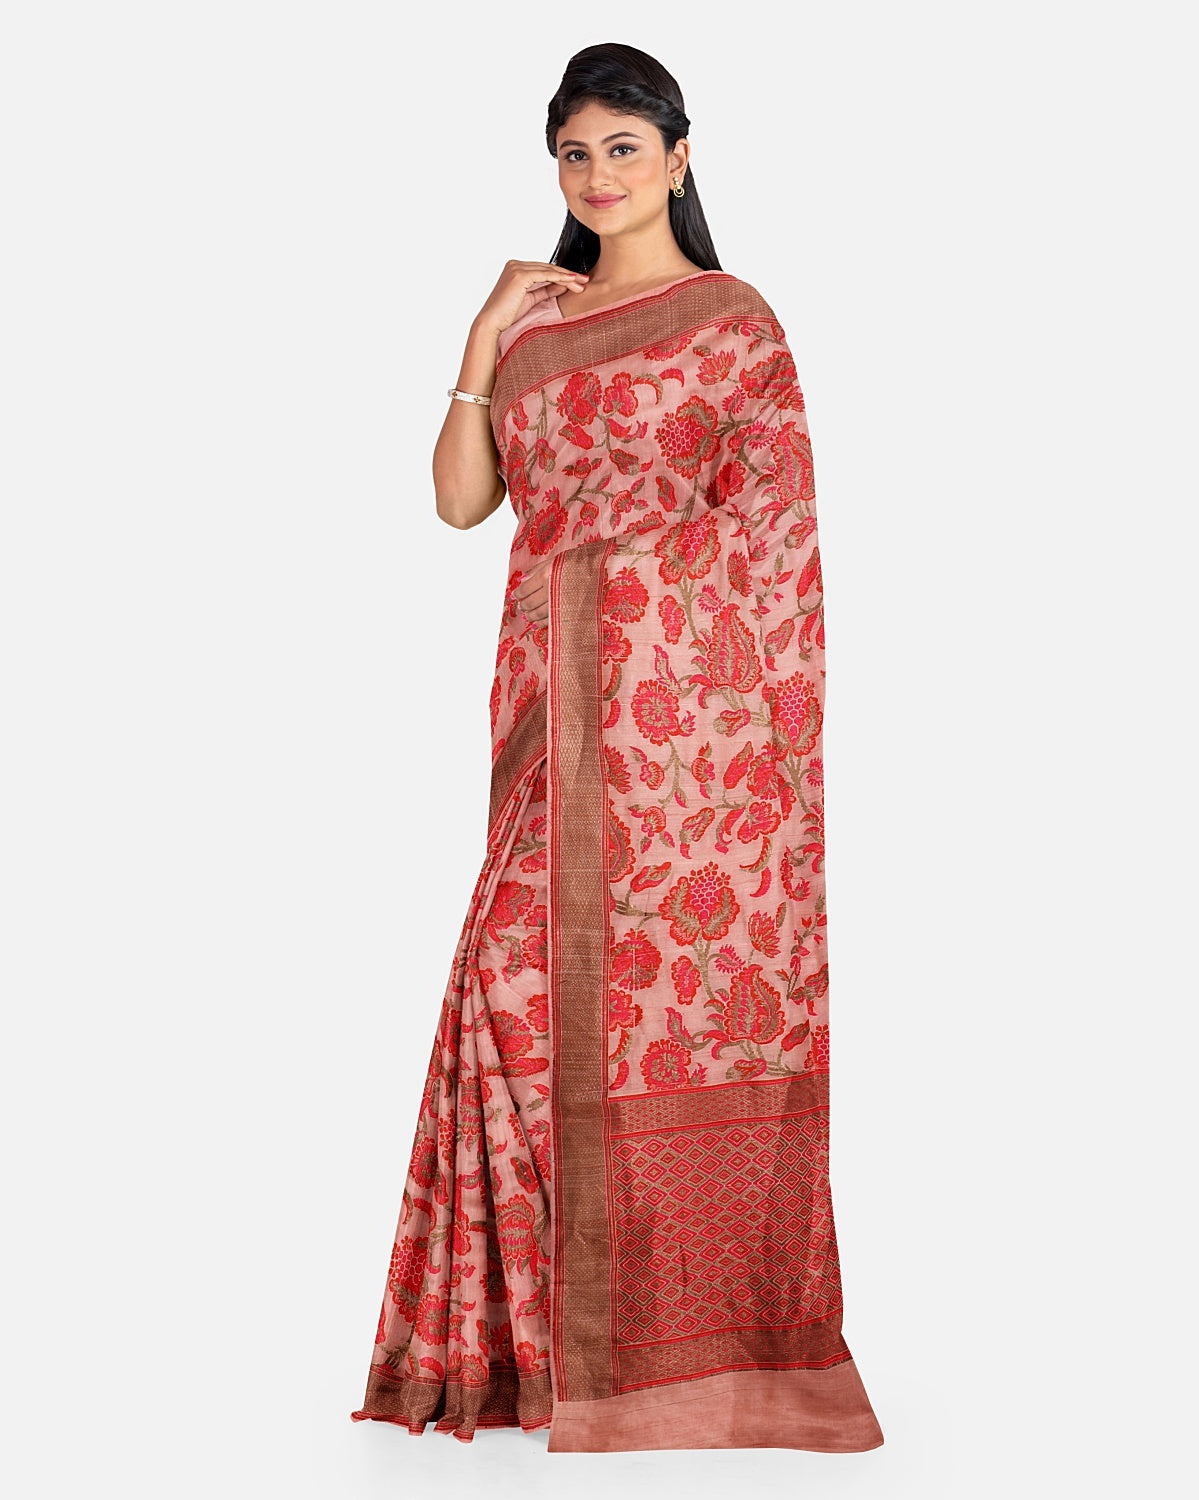 Nude Pink Tussar Georgette Saree